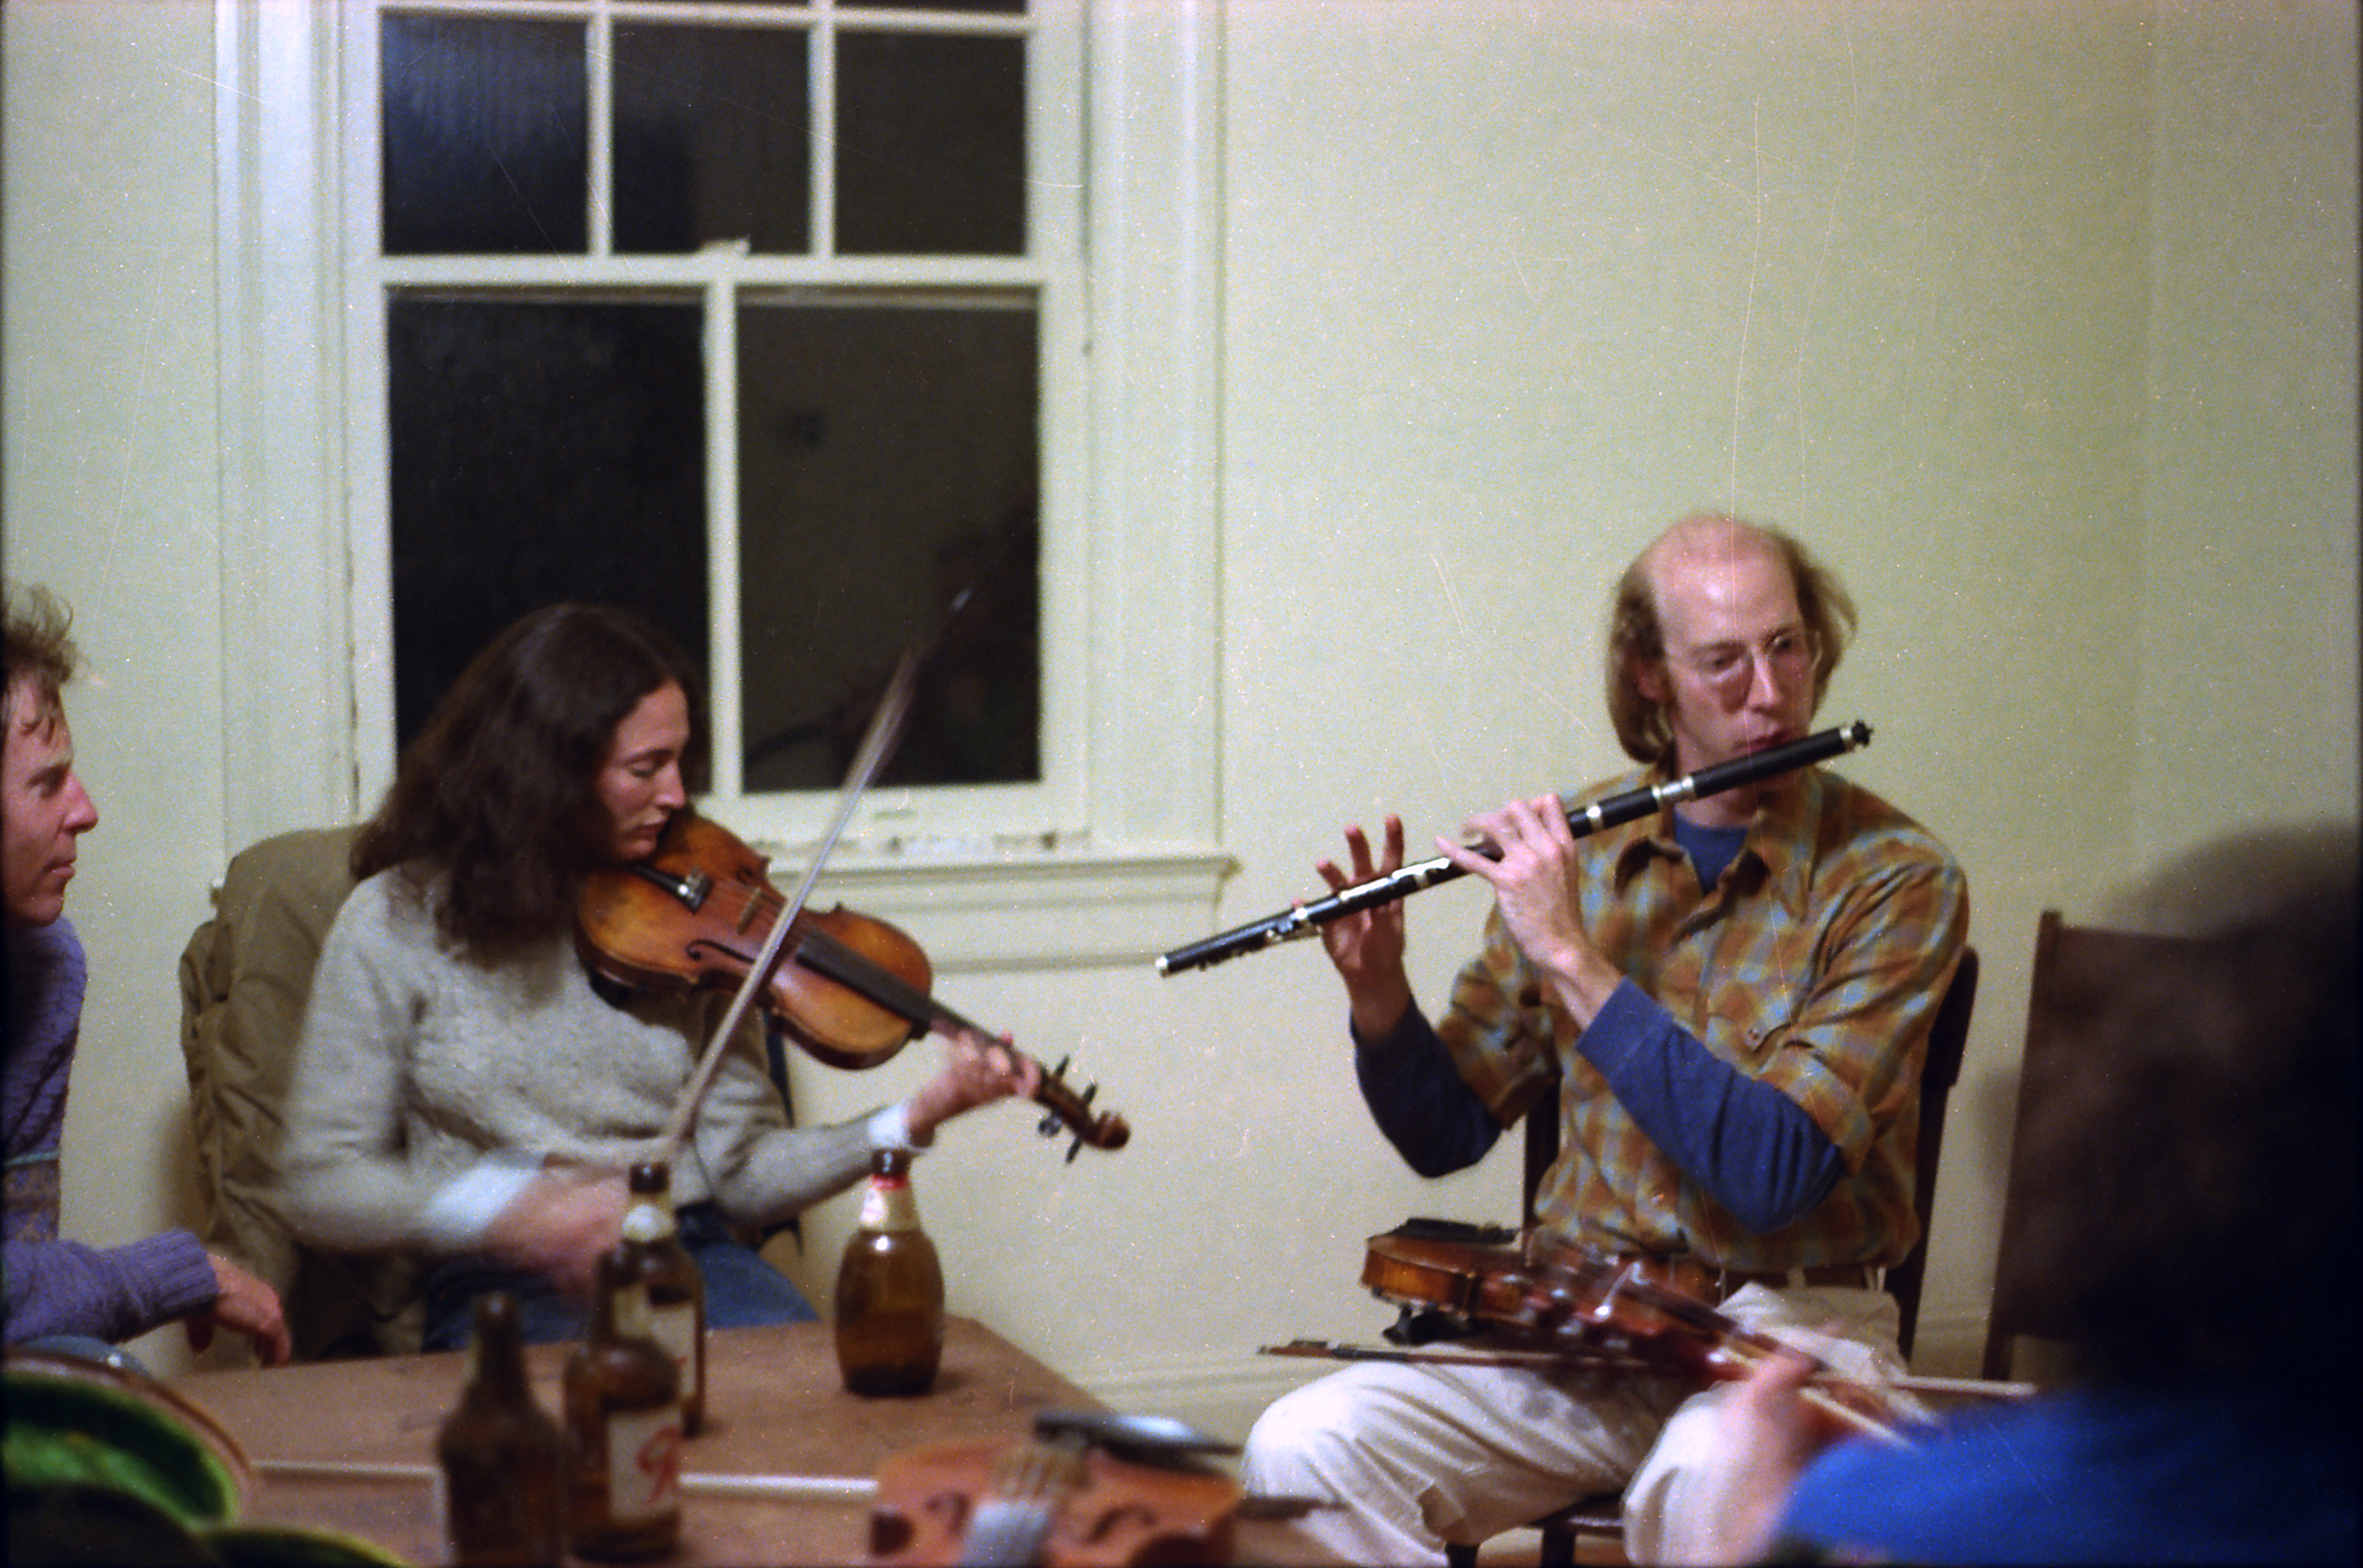 Laurie Riven and Marty Somberg, late night irish session at the bricks